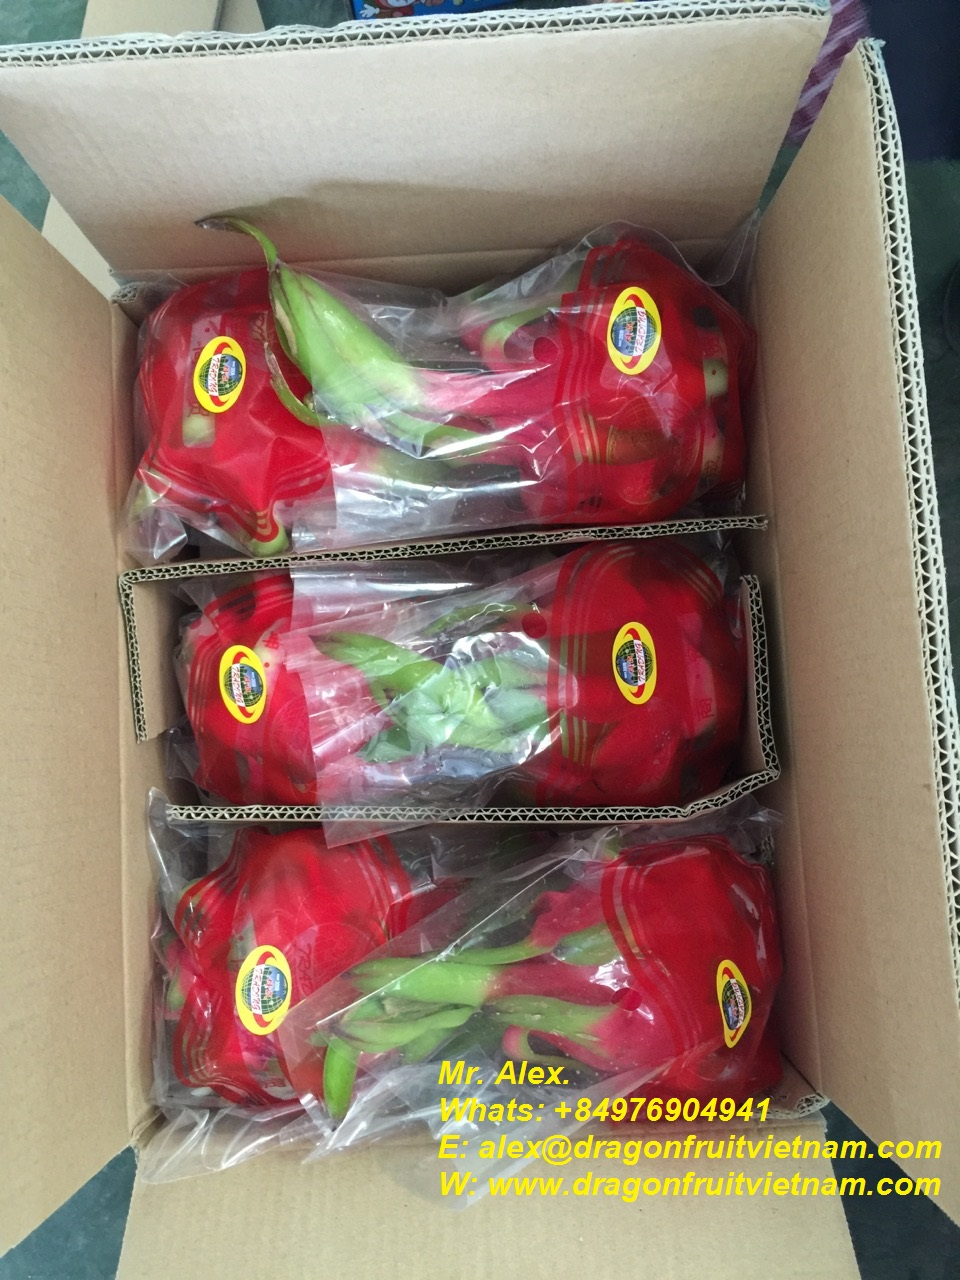 Hot Sales Dragon Fruit From Vietnam